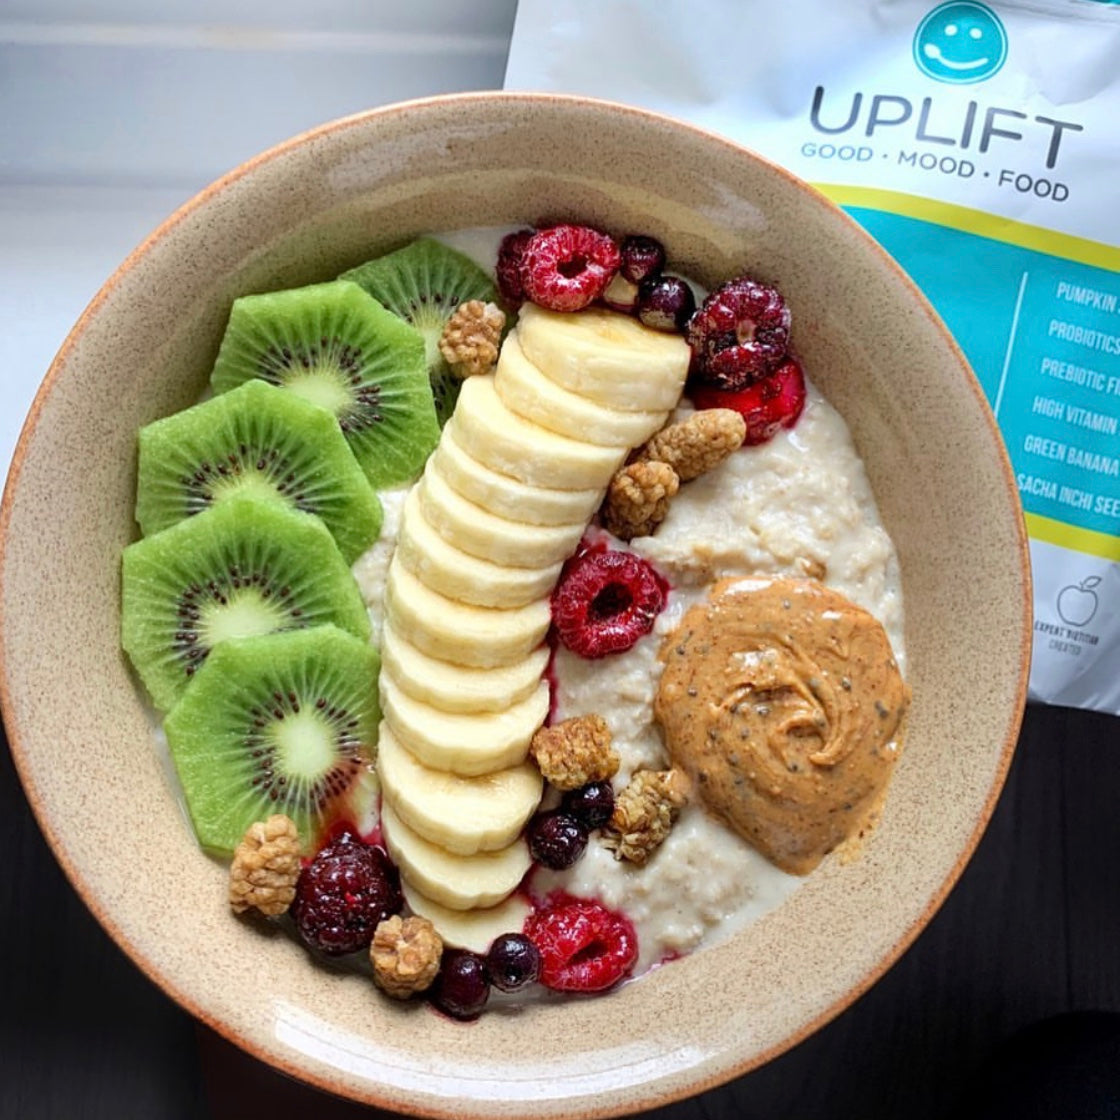 uplift food daily uplifter prebiotic supplement gut health psychobiotic prebiotic fiber gut happy cookies